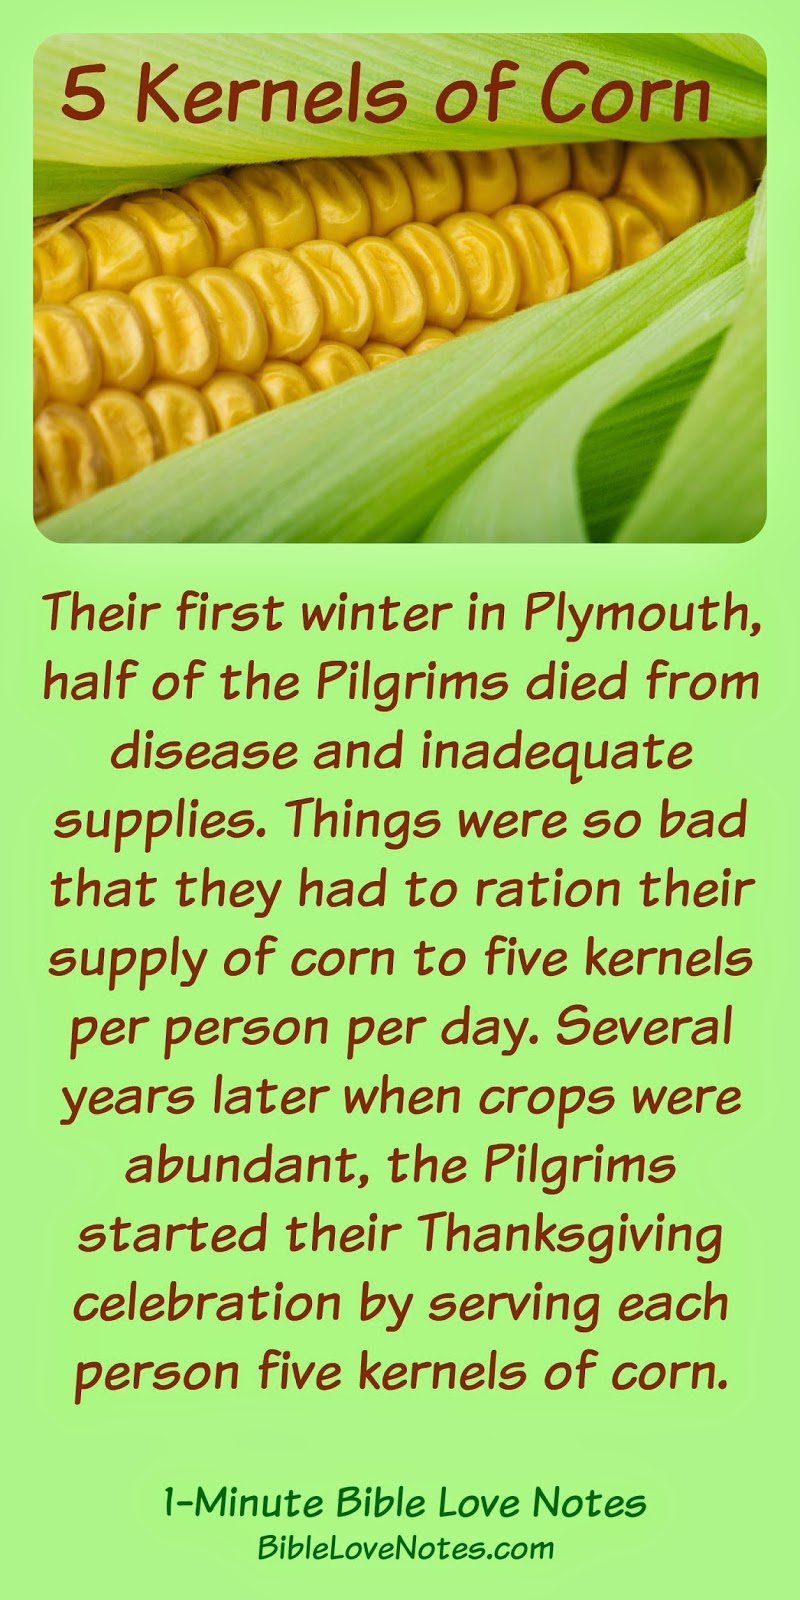 Pilgrims, story of hardship and thanksgiving, Thanksgiving heritage